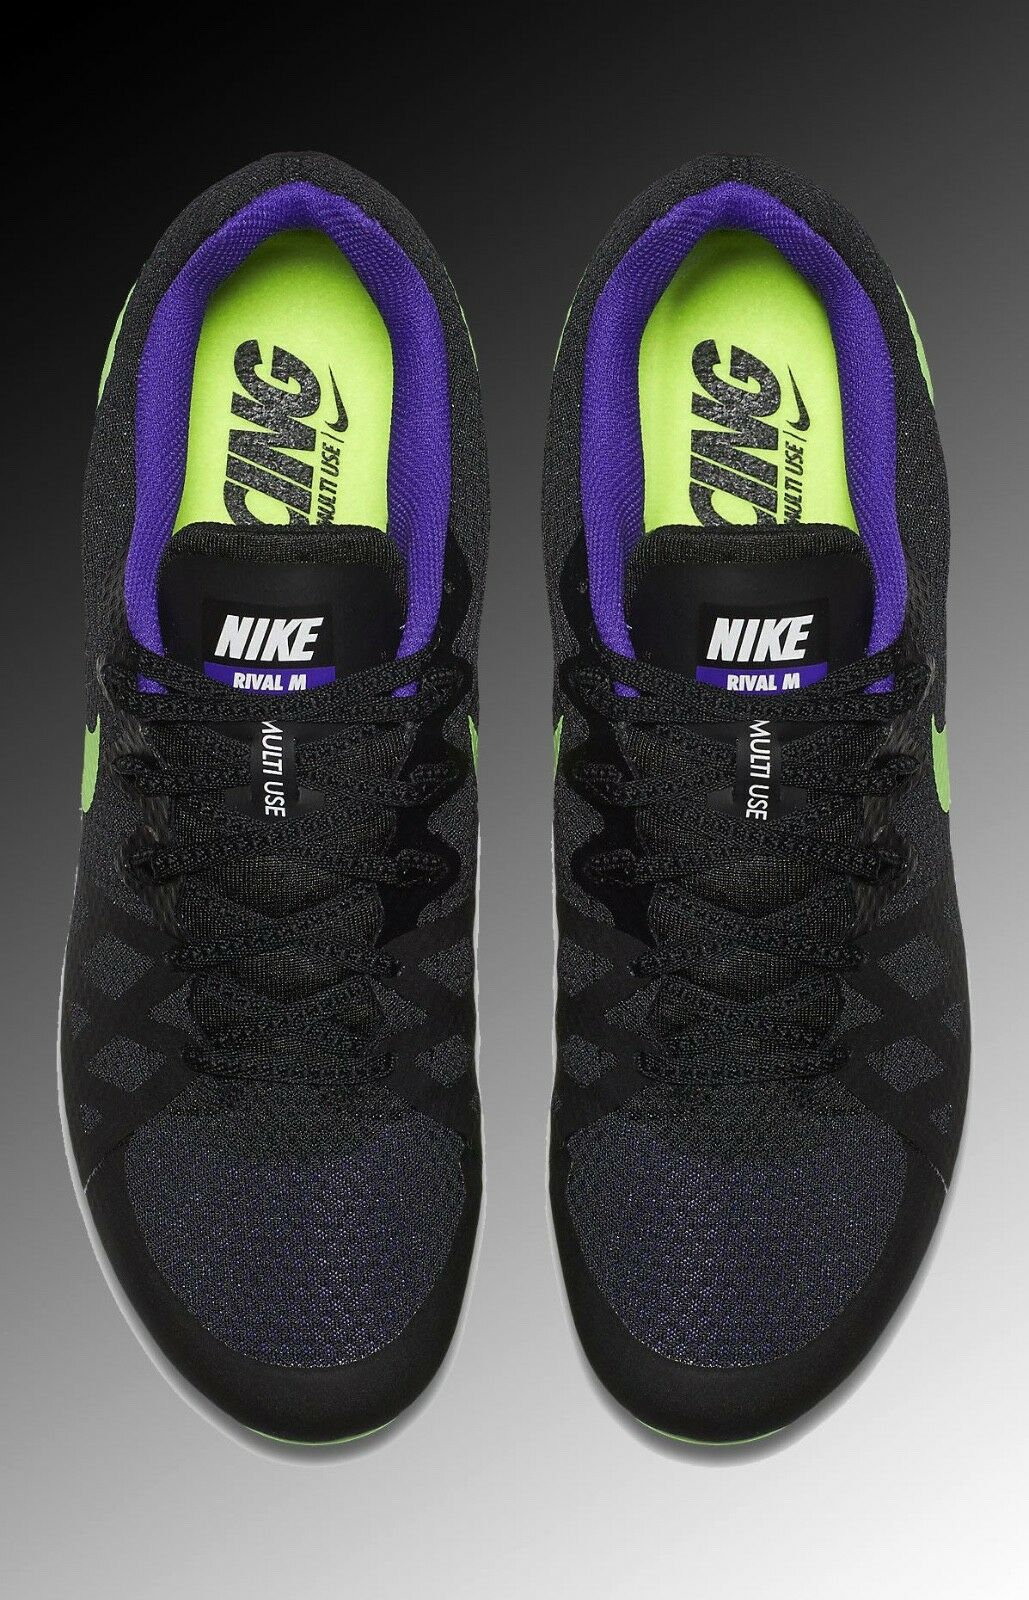 c862ad348a1 ... Nike Zoom Zoom Zoom M 8 Track   Field Spikes 806555-035 - Men 8 ...